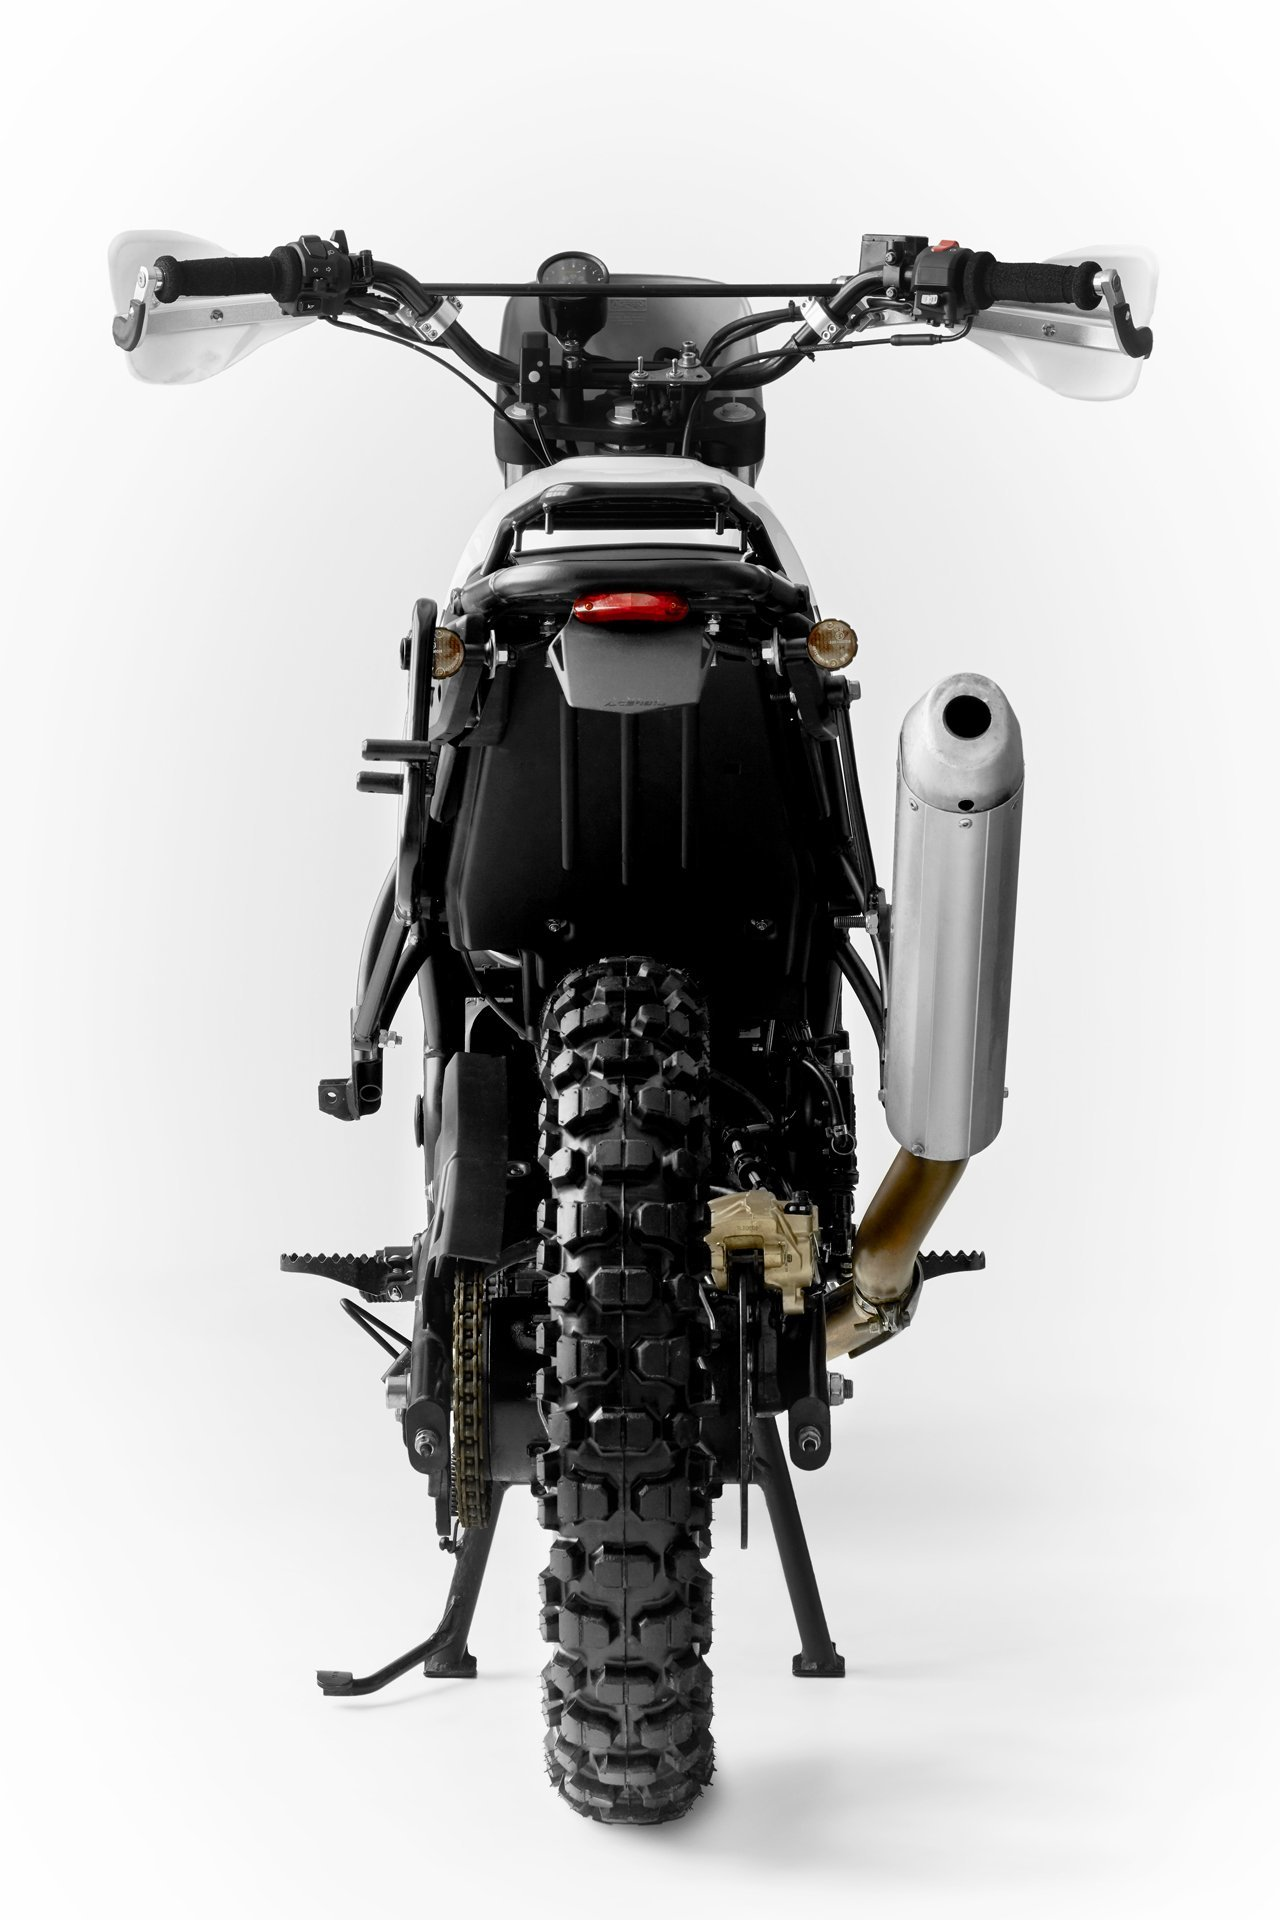 Royal Enfield Fuel Modified Cafe Racer Dm 8